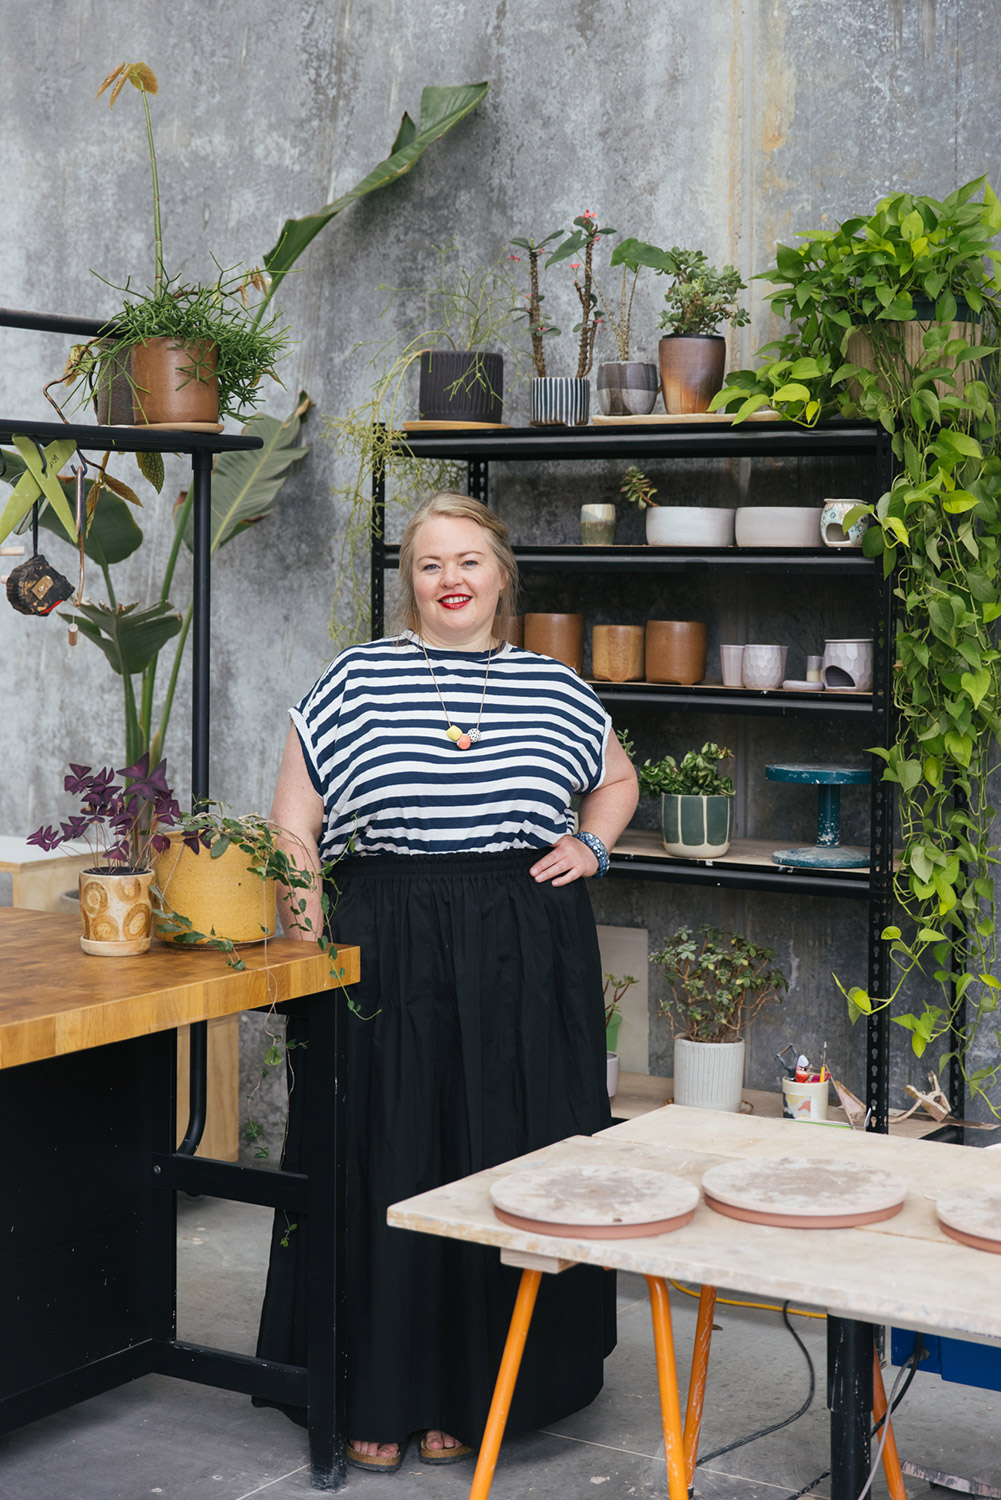 Ceramicist Arcadia Scott stands amongst her studio space, surrounded by shelves of her handmade work and indoor plants